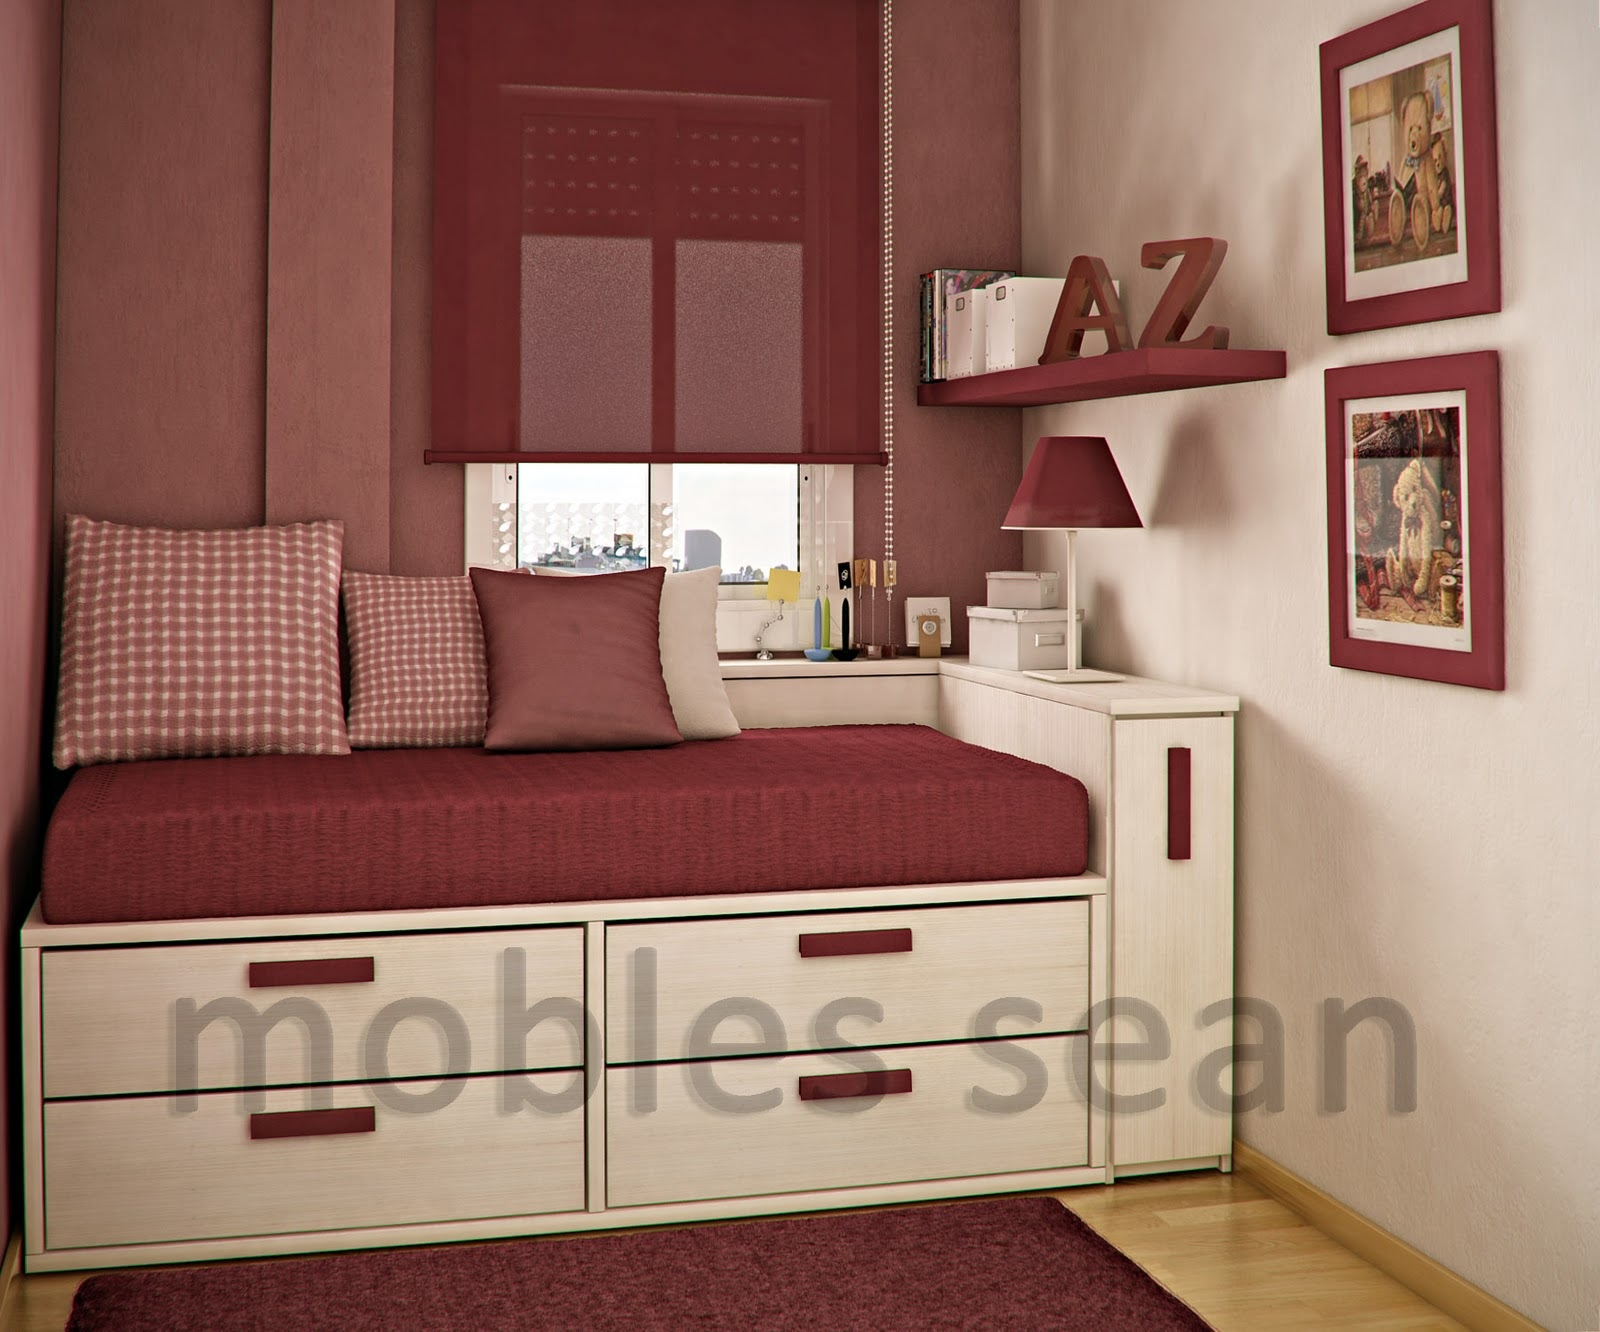 http://cdn.home-designing.com/wp-content/uploads/2012/02/red-white-small-kids-room.jpg